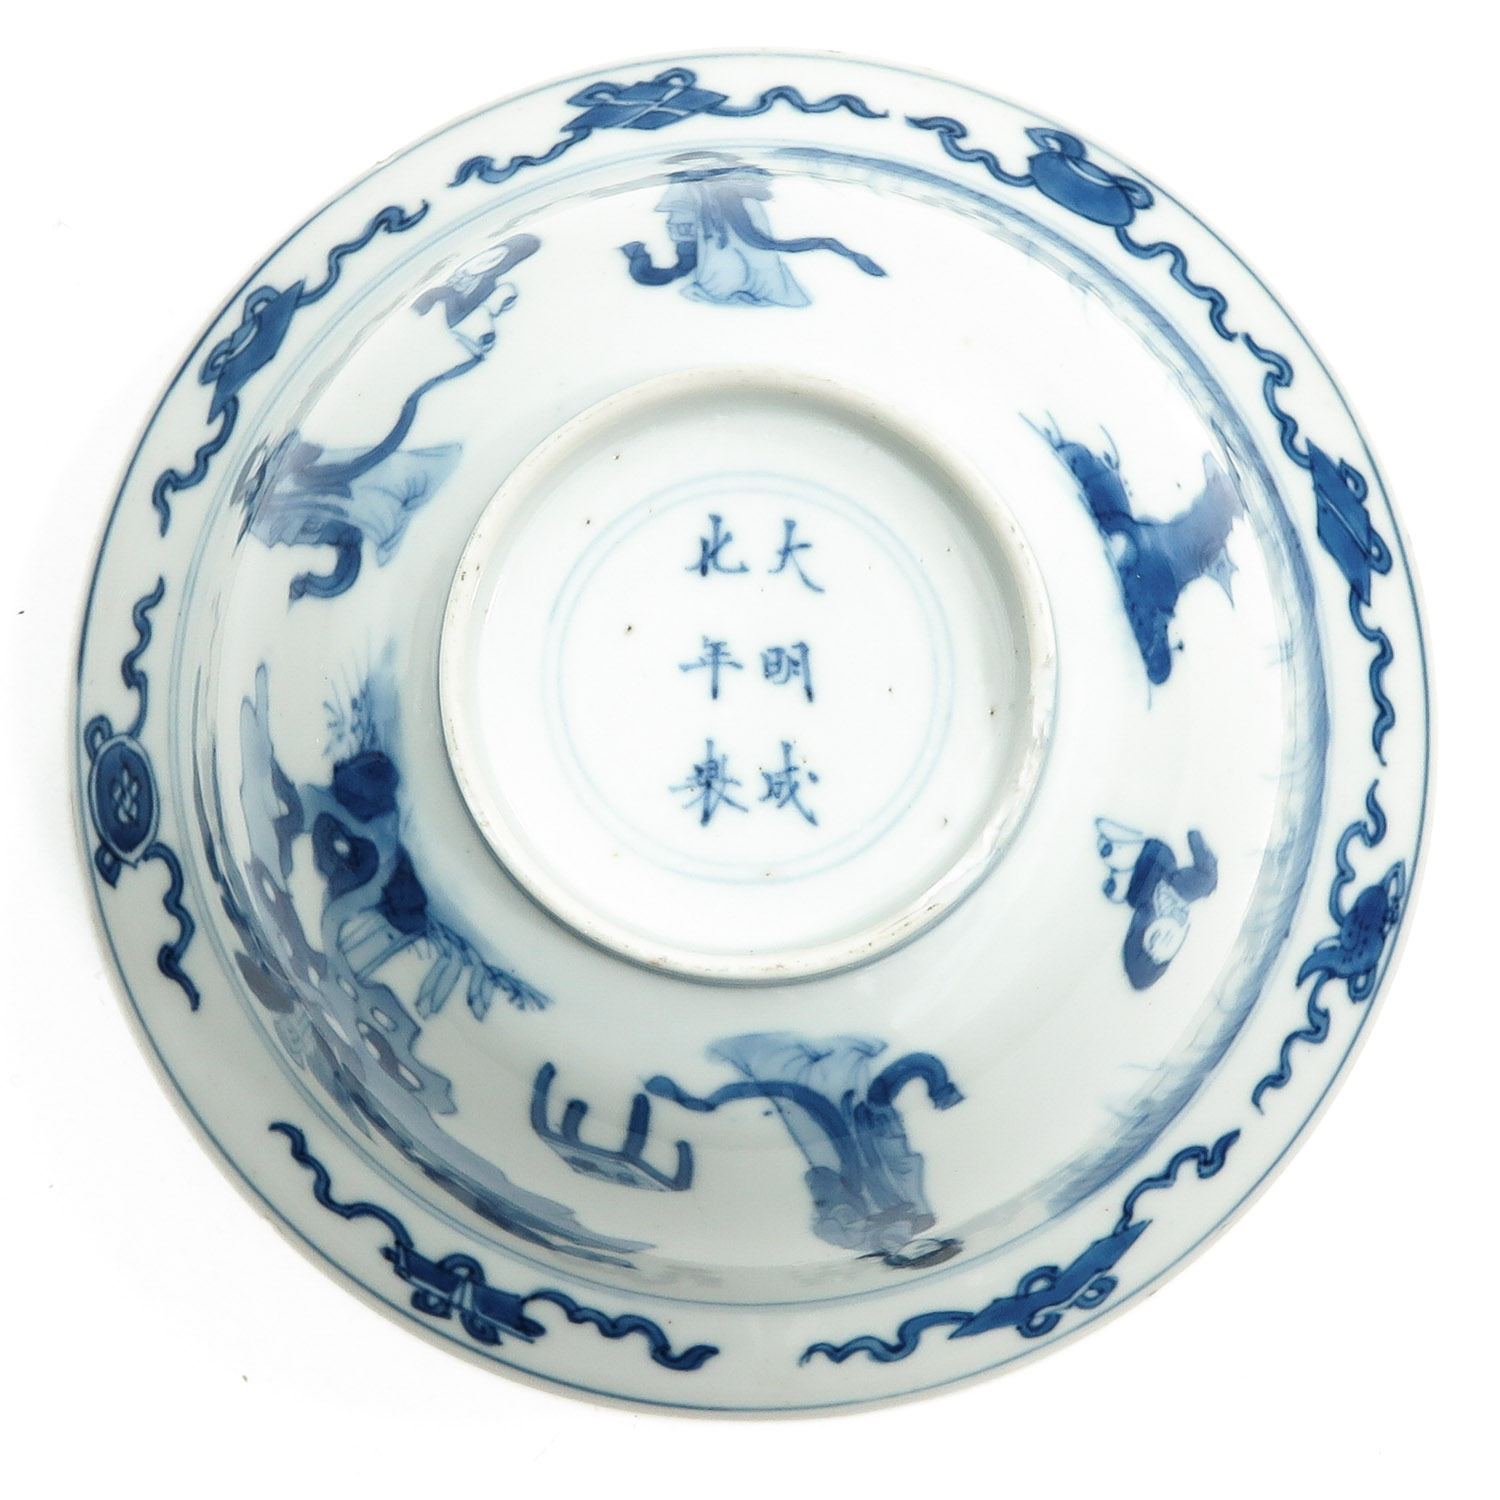 A Blue and White Bowl - Image 6 of 10